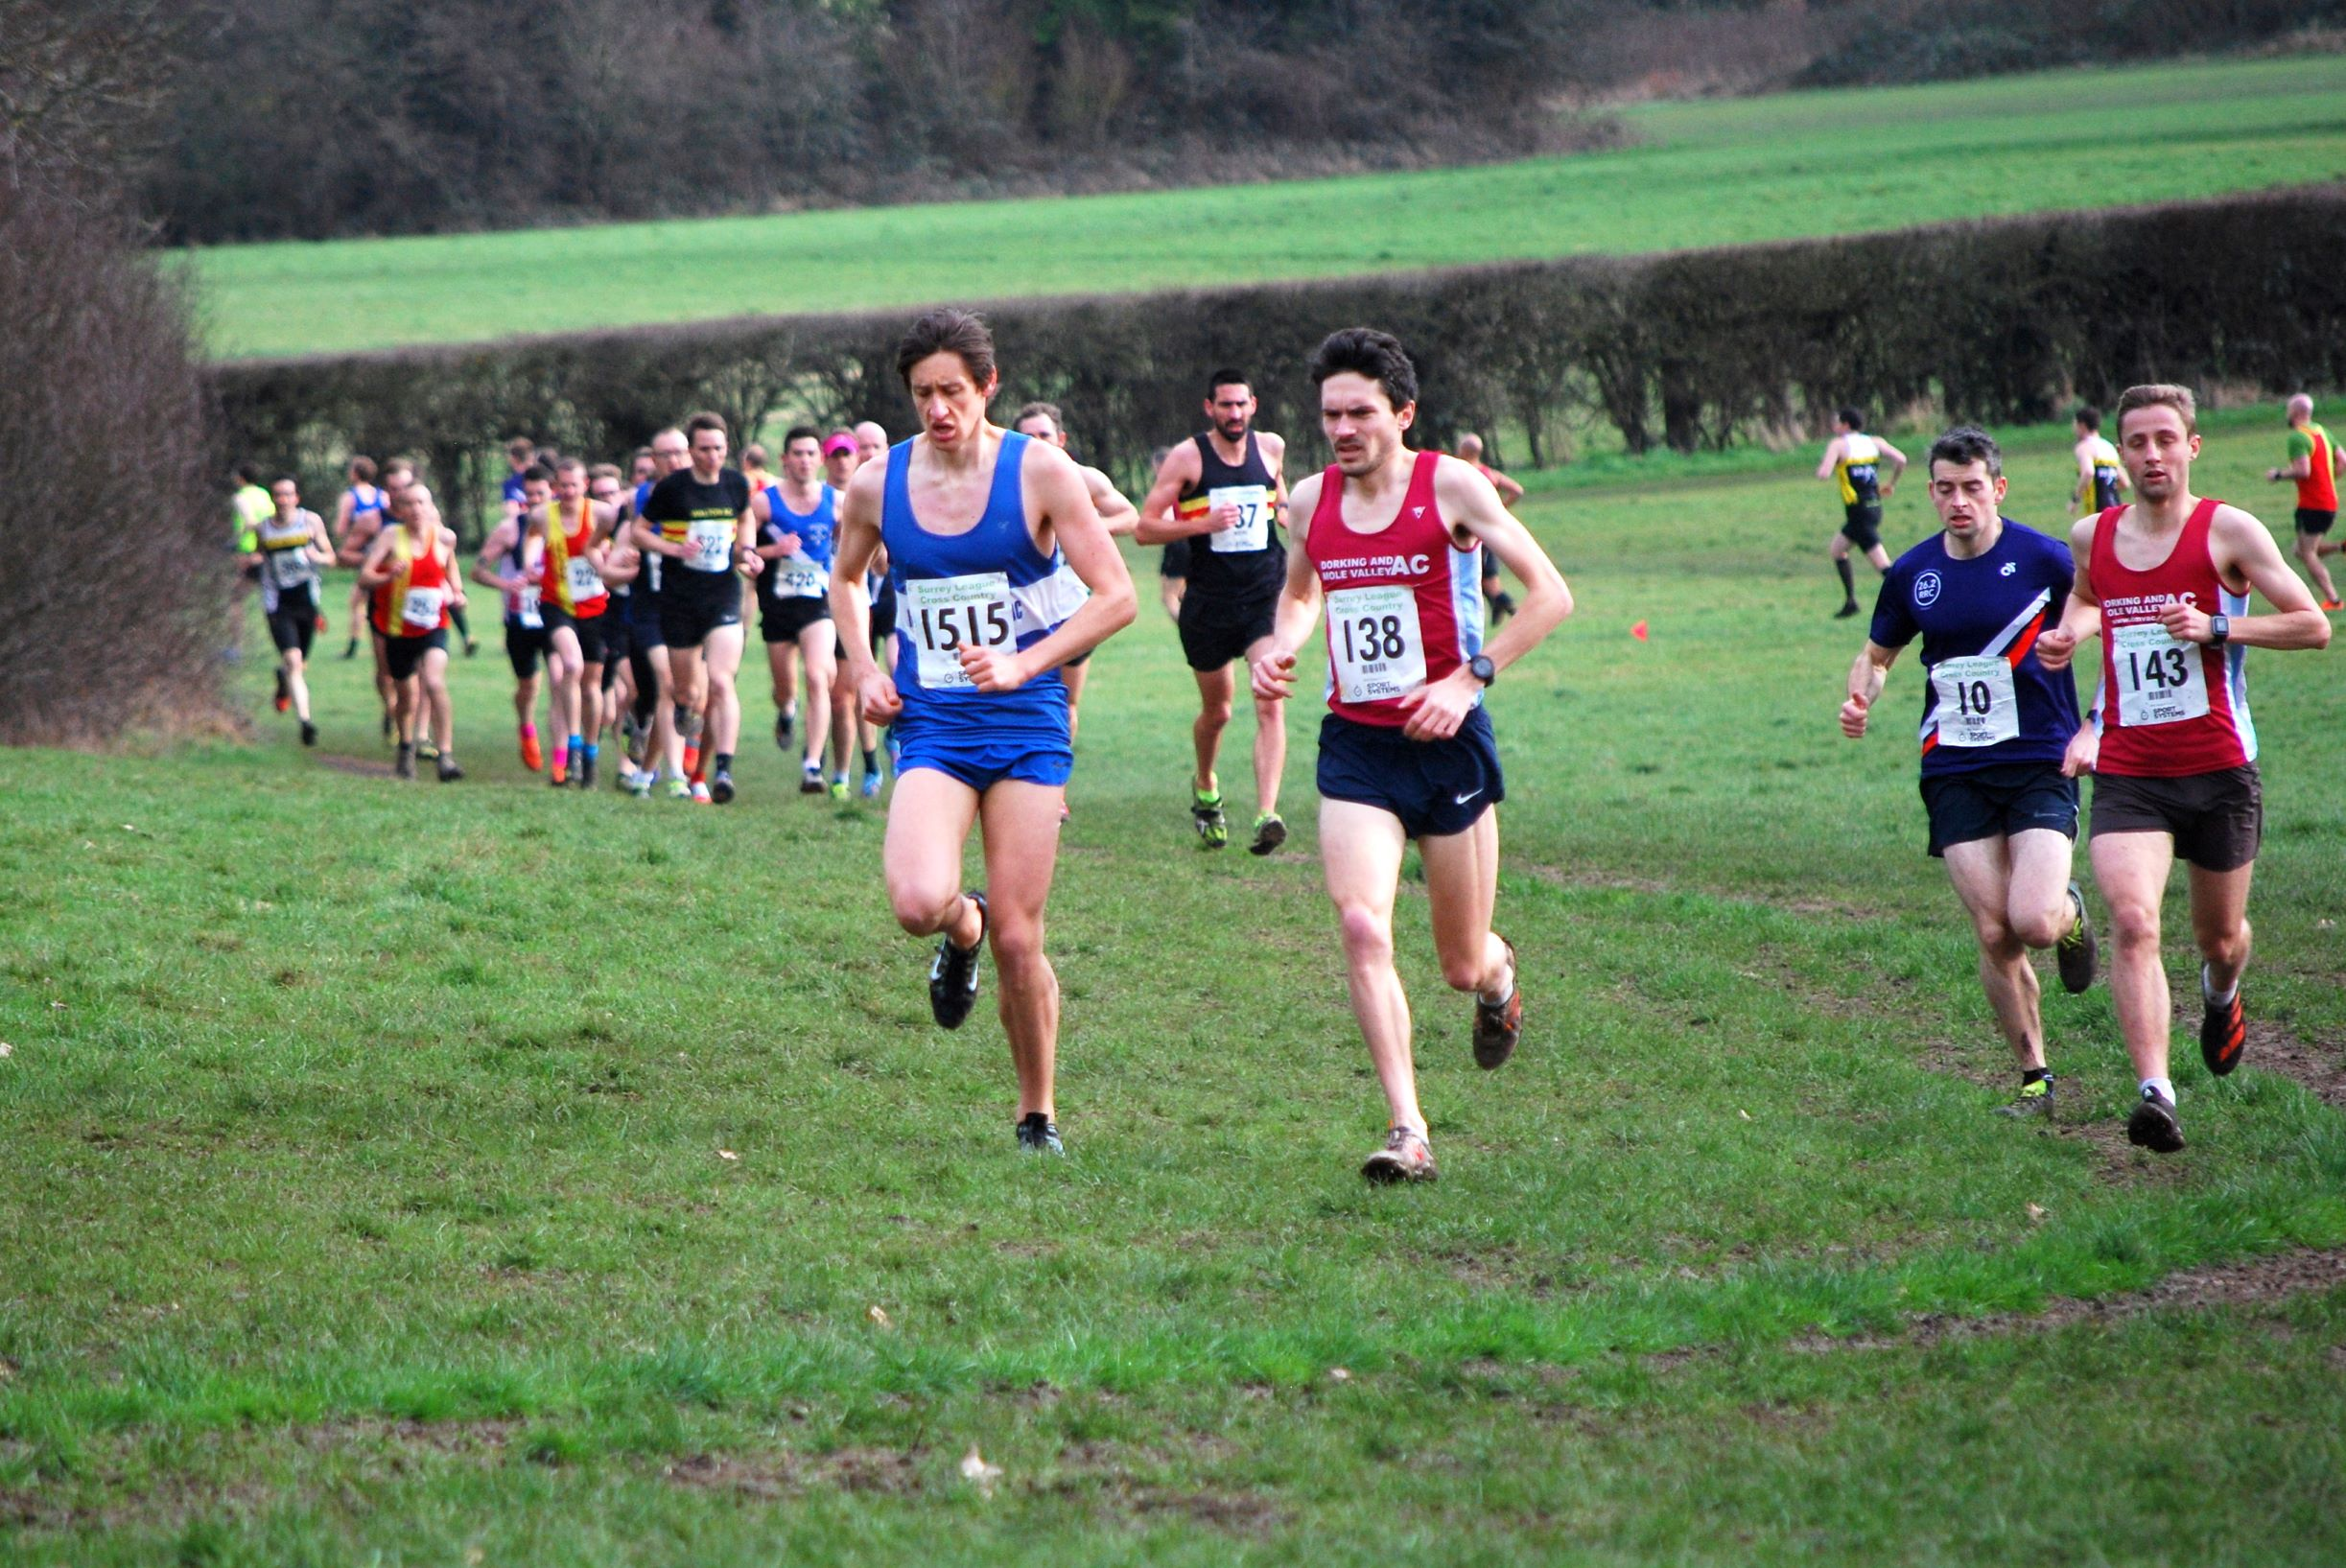 Surrey Cross Country League Men's Division 3